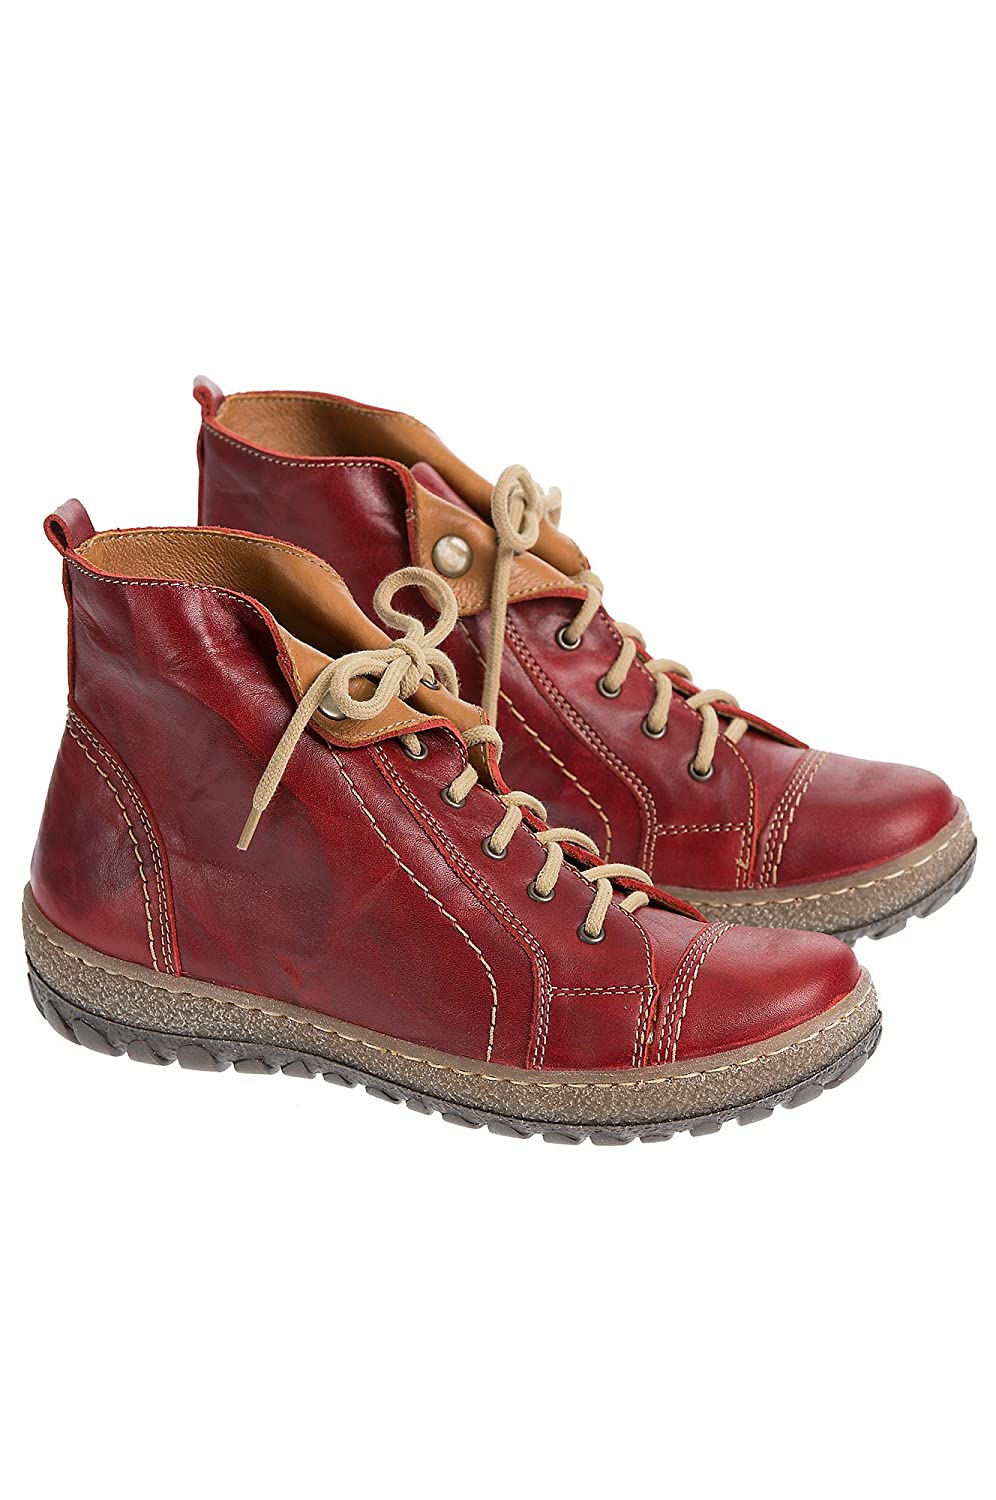 Women's Overland Tucker Leather Ankle Boots B00XNXU6T6 EU38|Red